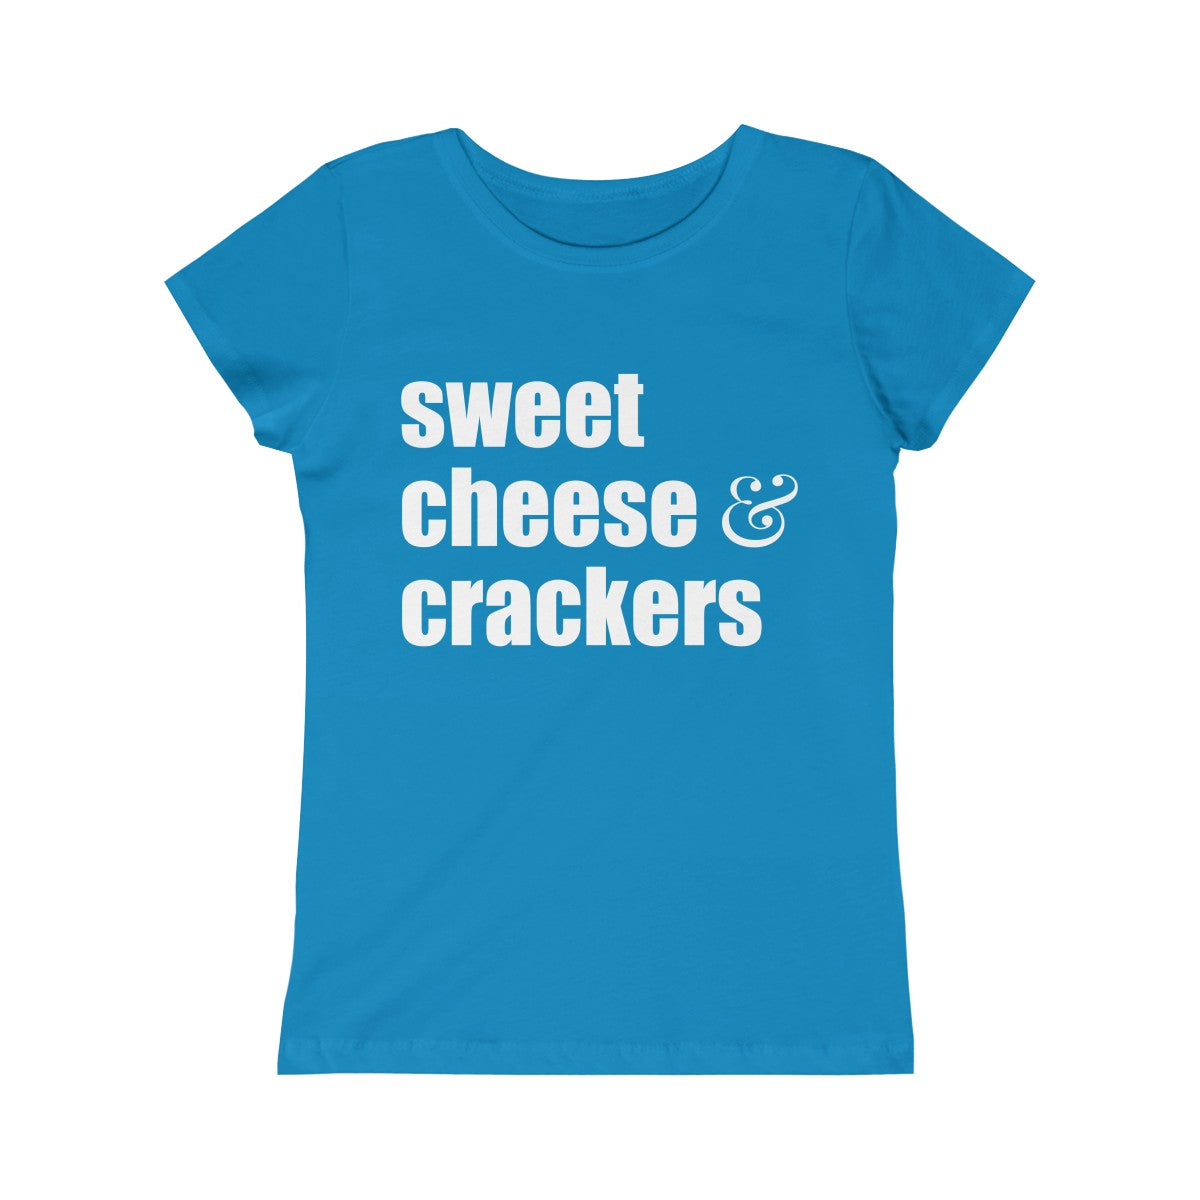 sweet cheese & crackers girl t